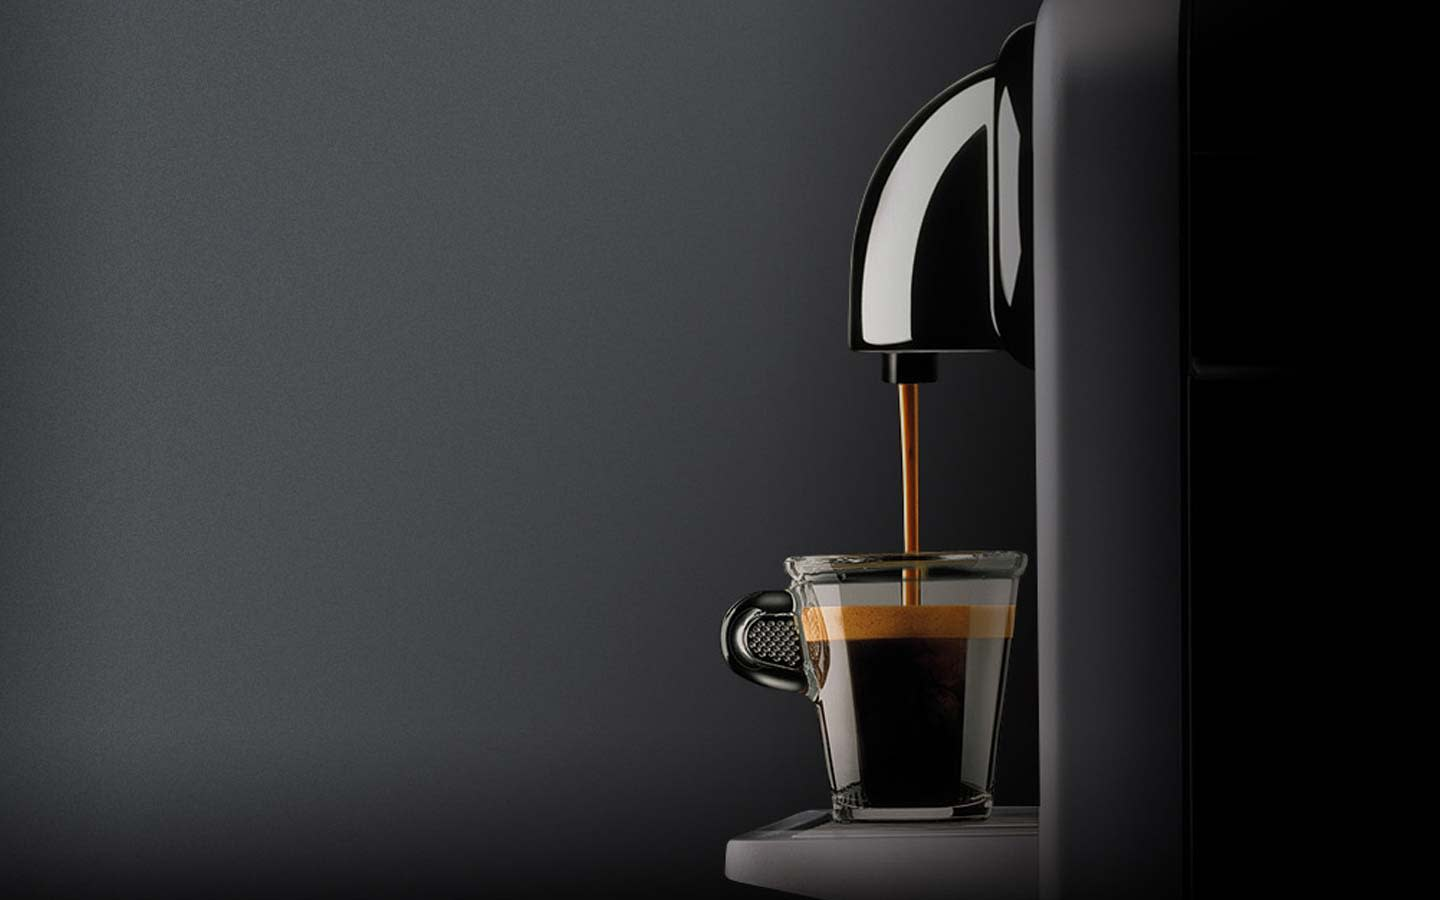 Best Office Coffee Service Inc. Miami